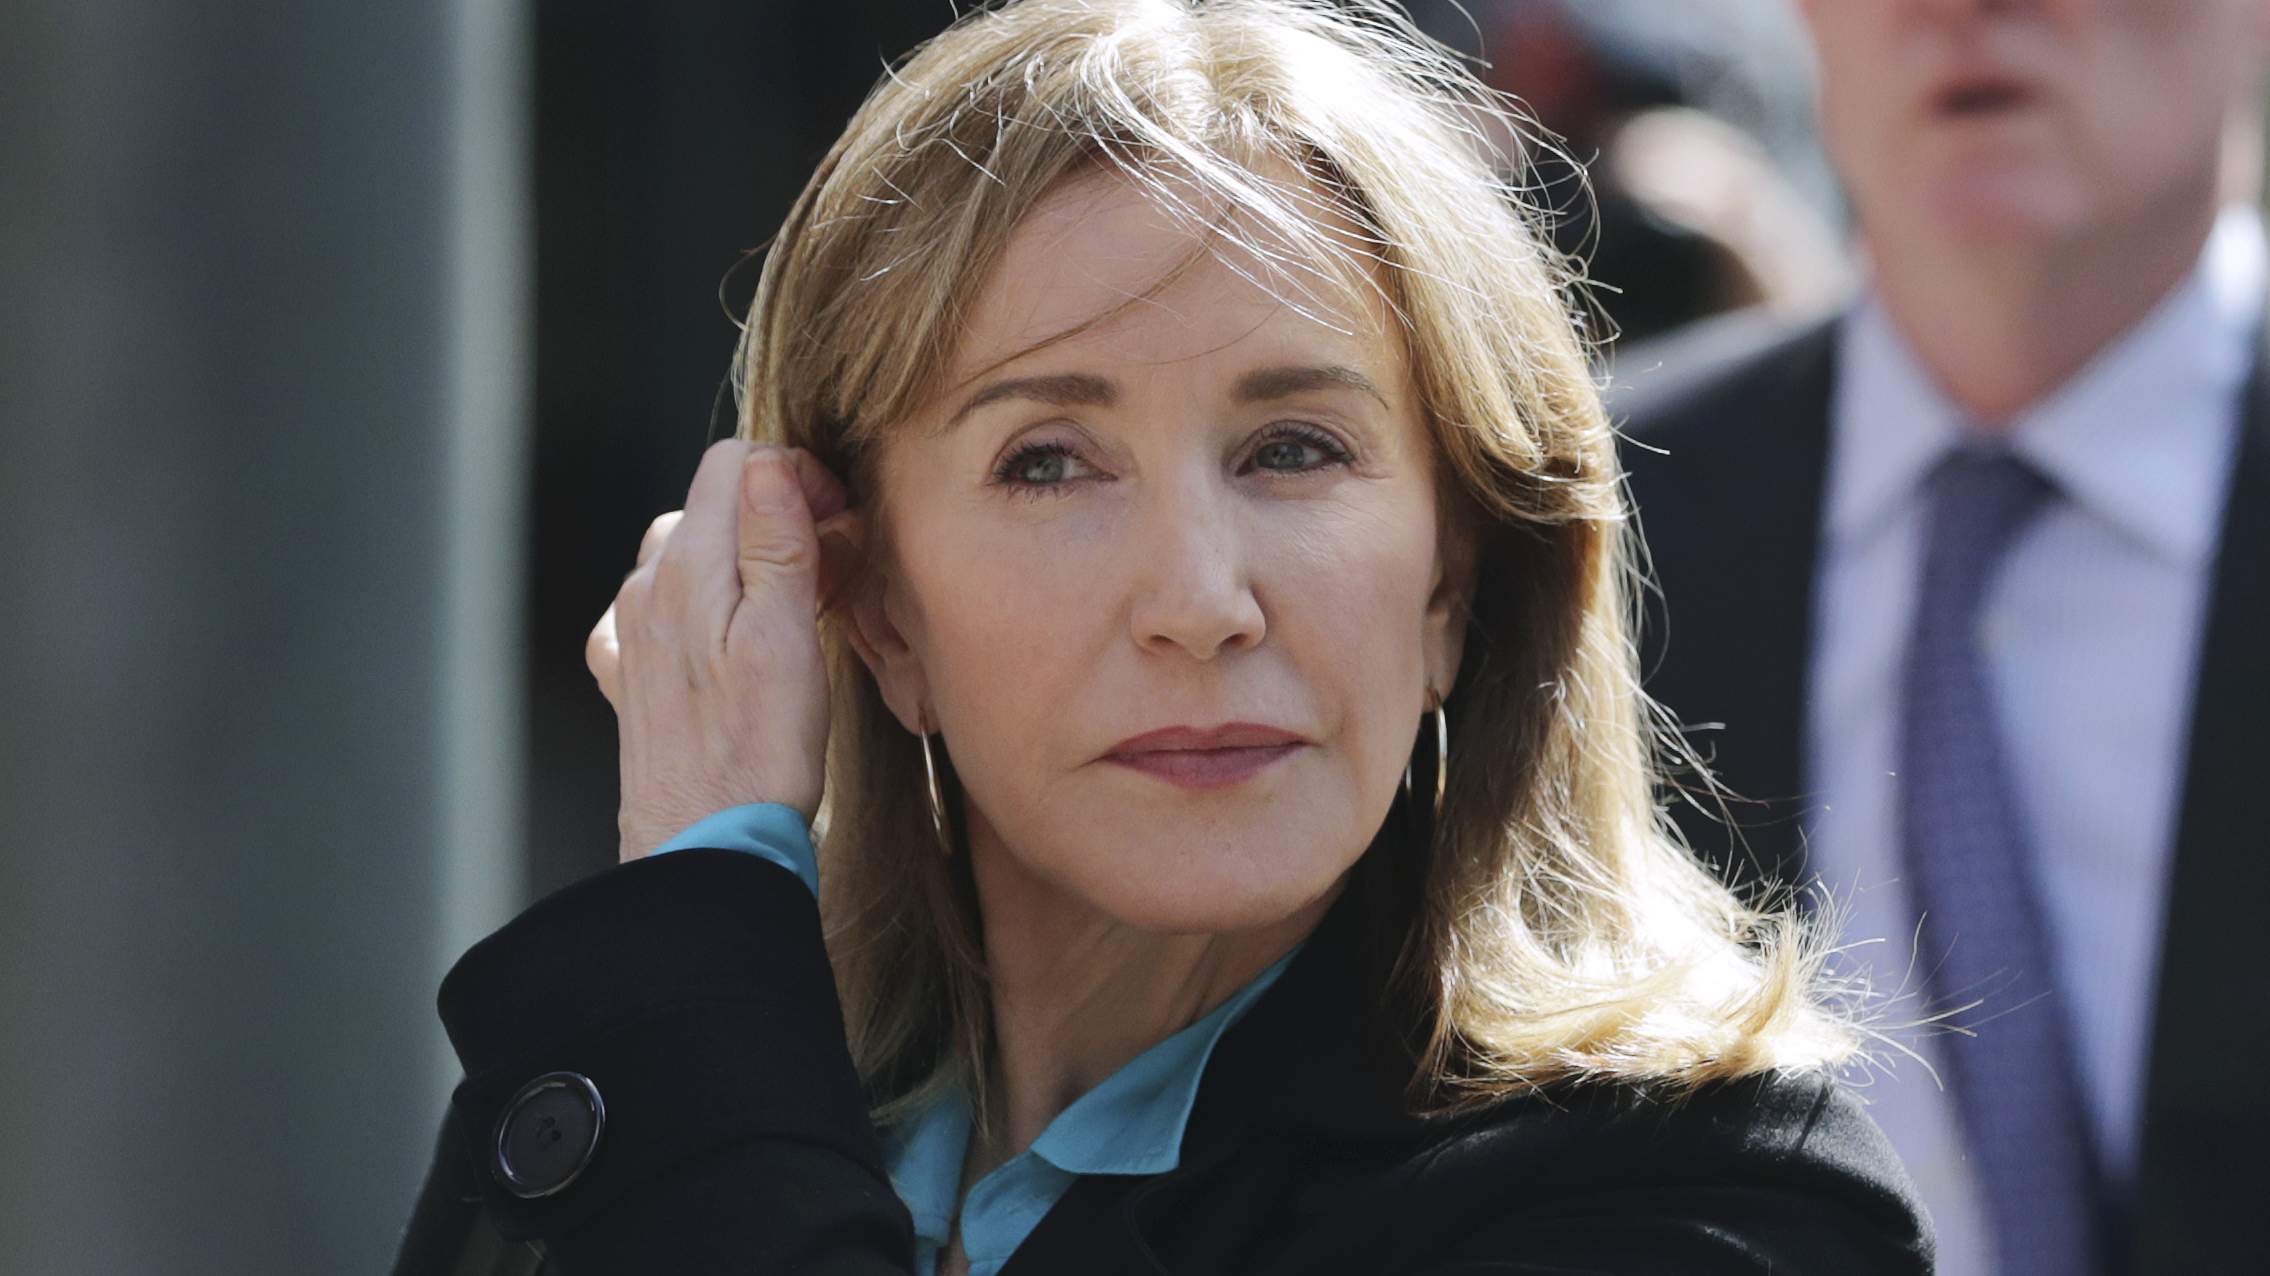 Federal prosecutors say that one coach and 13 parents, including actress Felicity Huffman, will plead guilty to fraud charges in the college admissions scandal. Huffman is seen here arriving  at federal court in Boston last week.